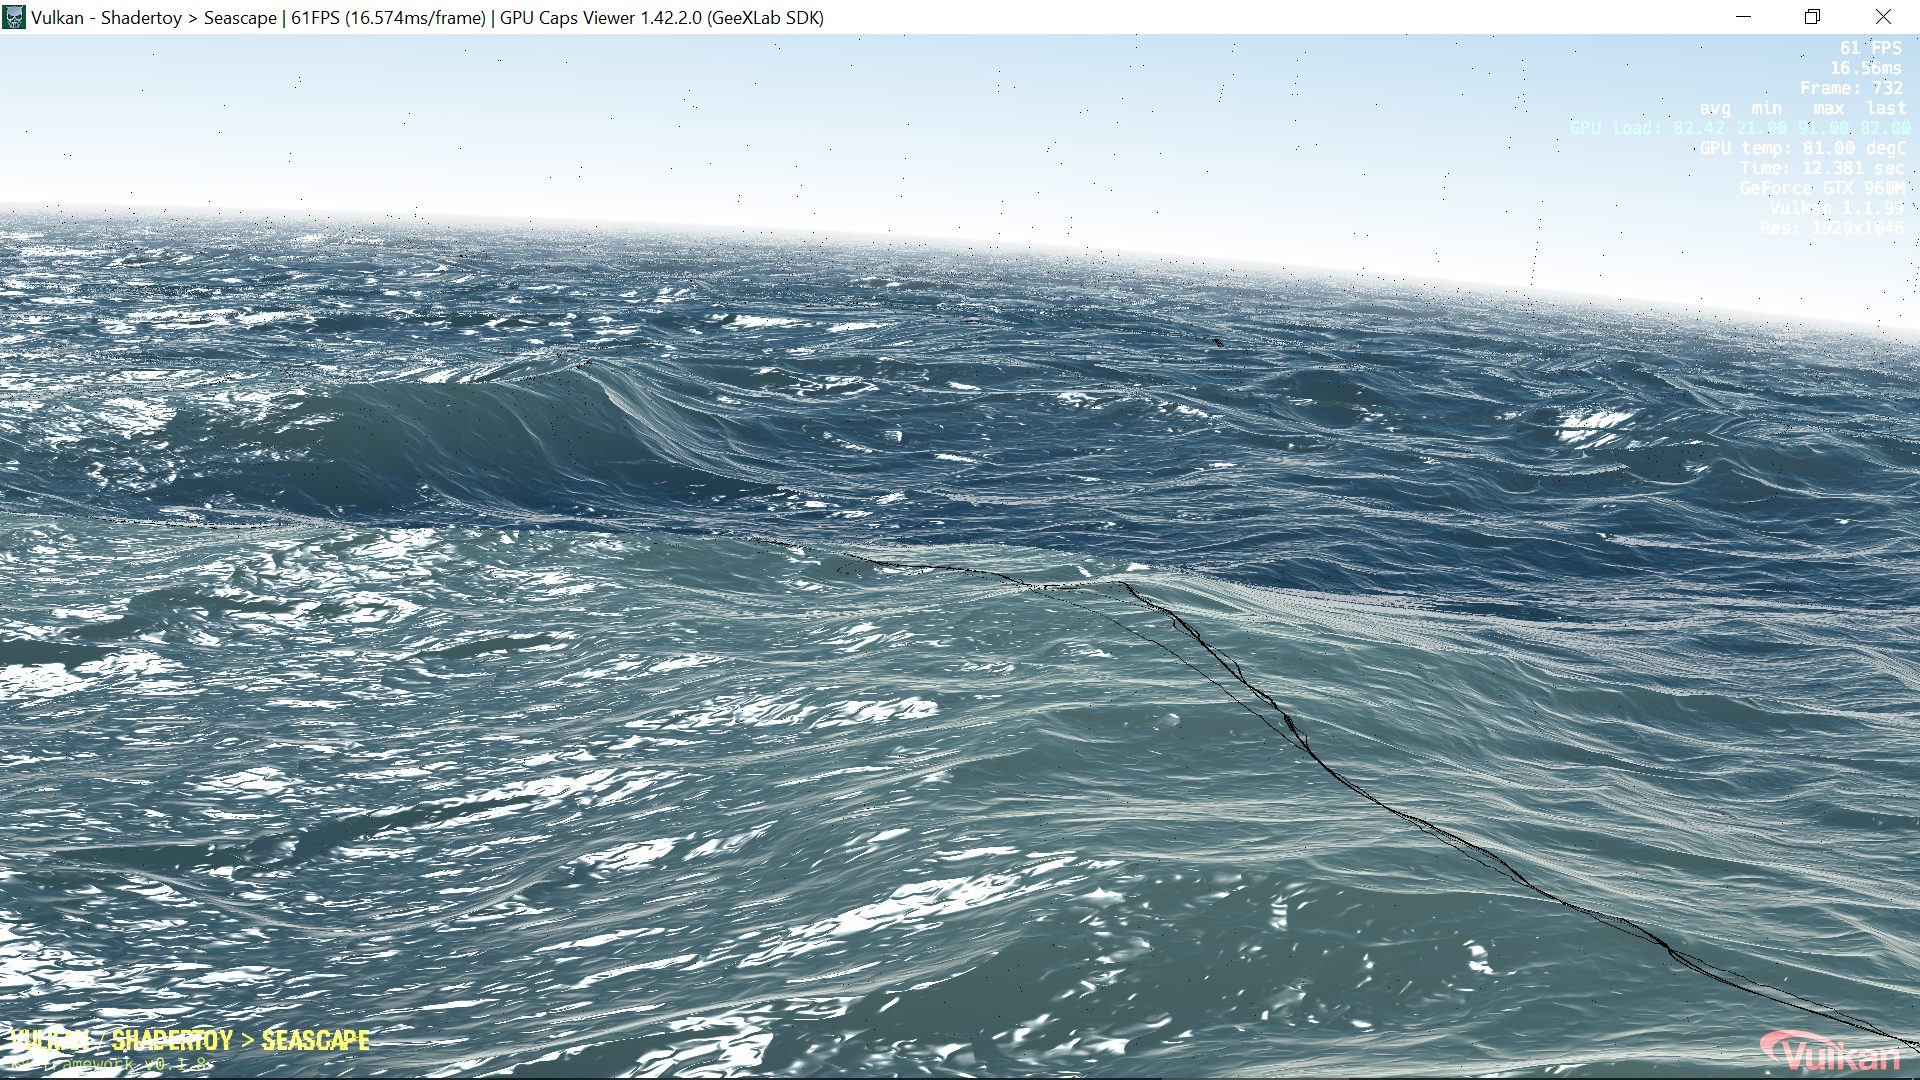 GPU Caps Viewer - Seascape demo, visual glitches